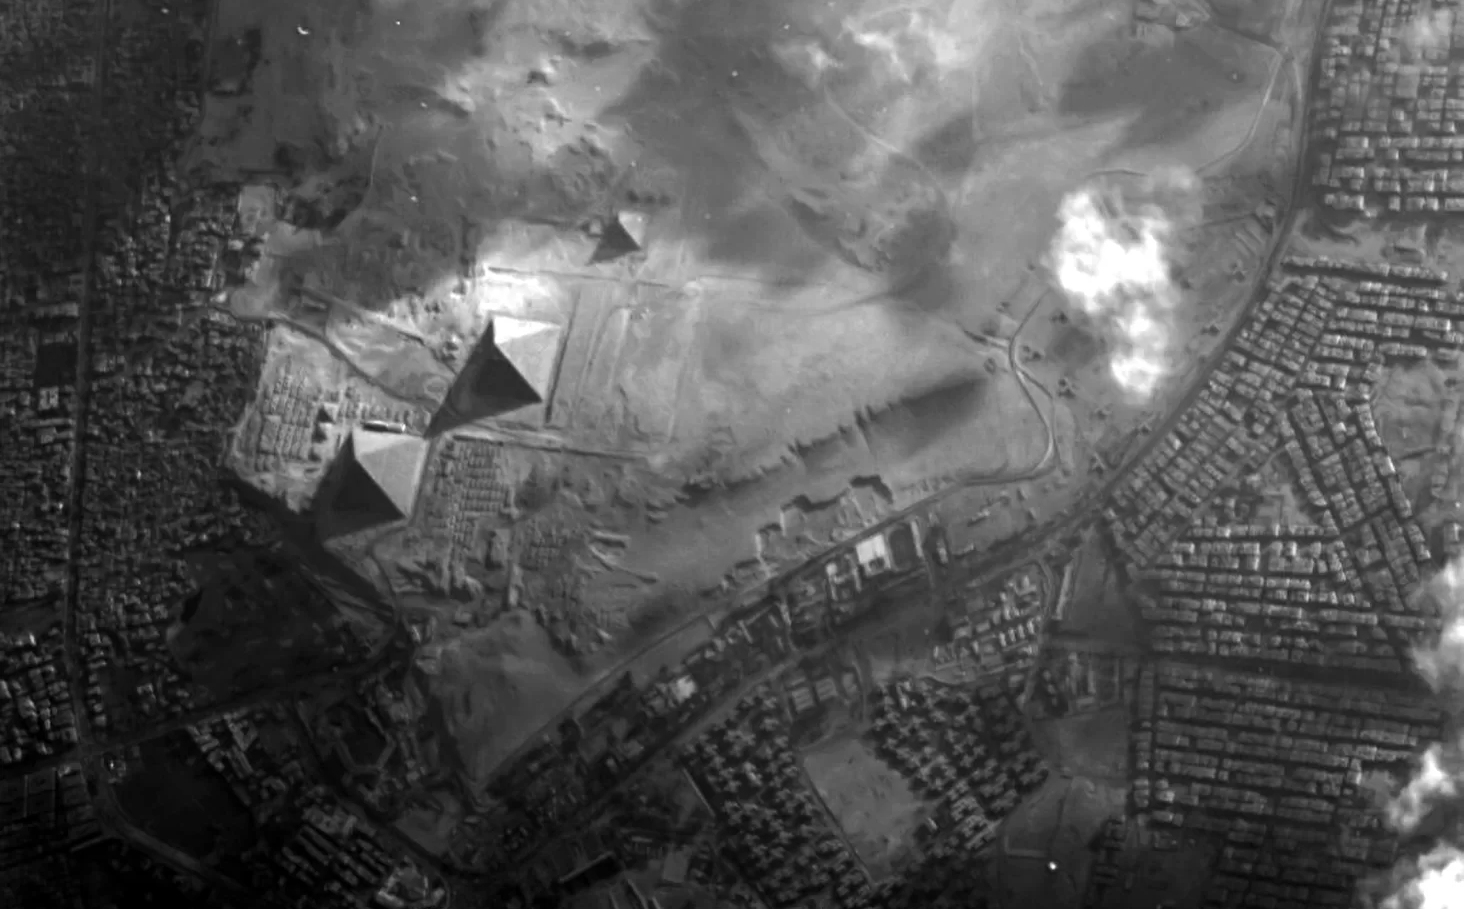 Dear webby humor letter blog how to turn an upside down screen famous giza pyramid complex towers over the western desert in this view from the european space agencys proba 1 minisatellite the largest of the three fandeluxe Choice Image